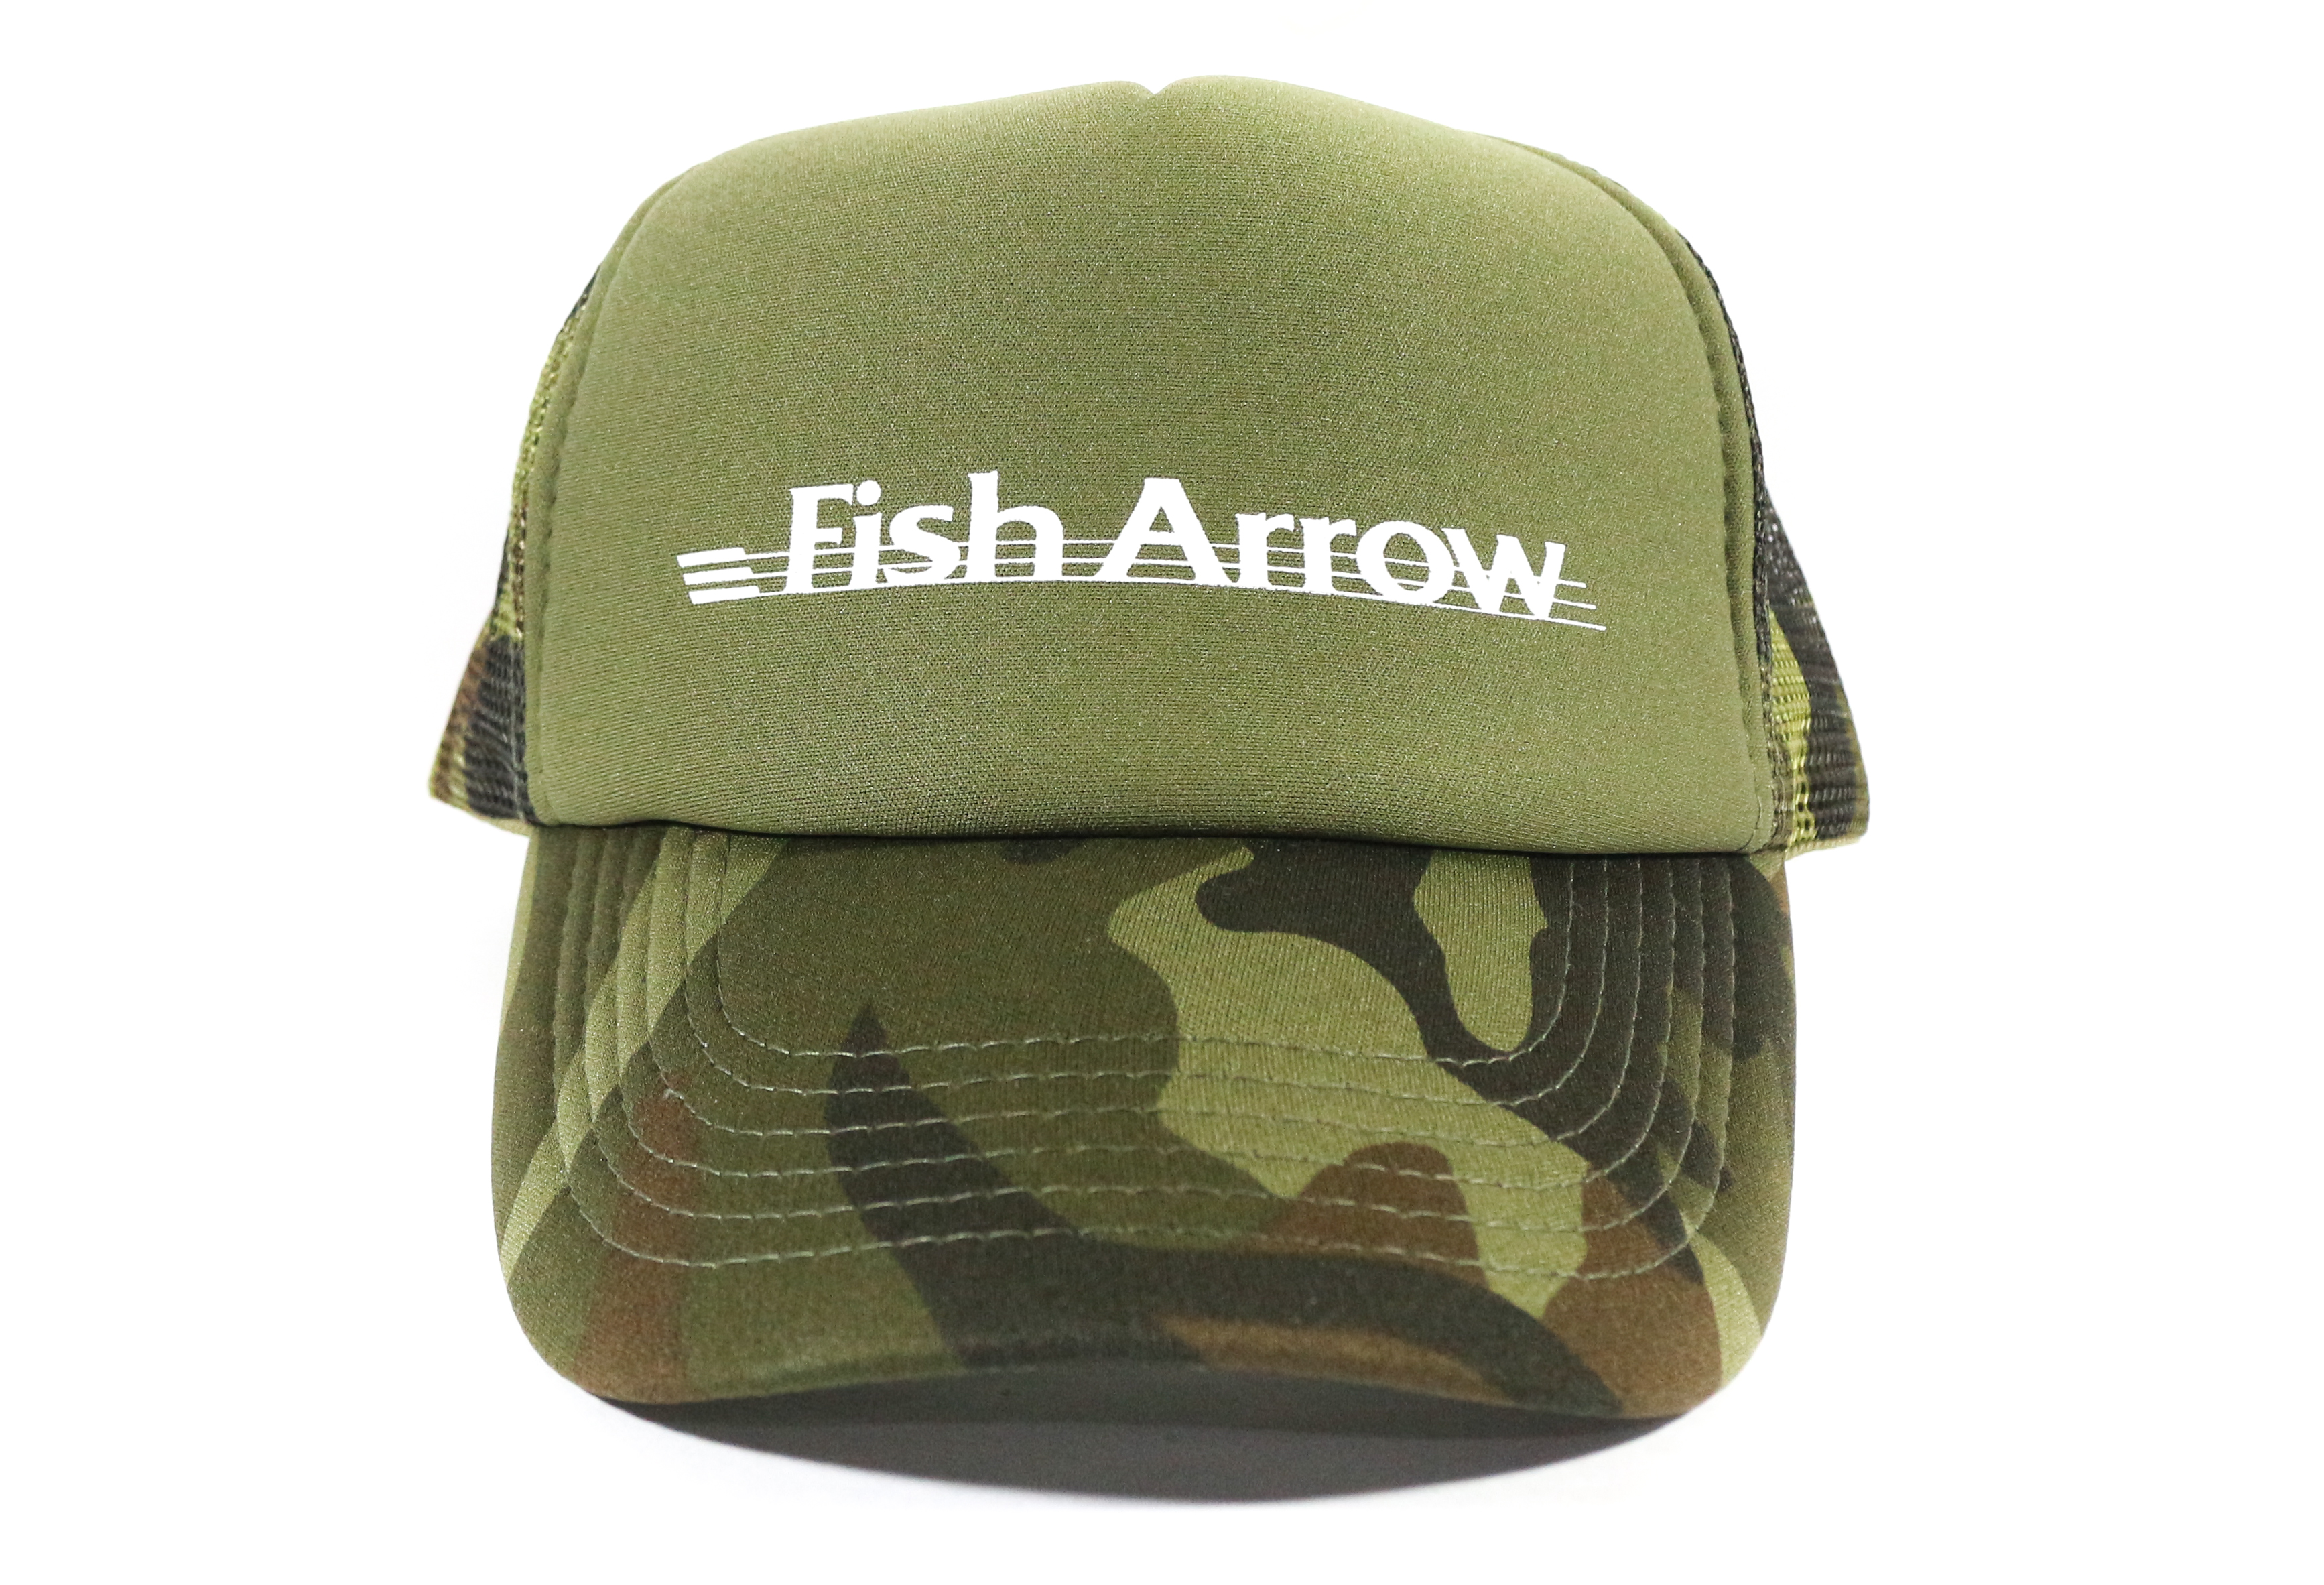 Fish Arrow Cap Mesh Fish Arrow Design Green/White (7811)